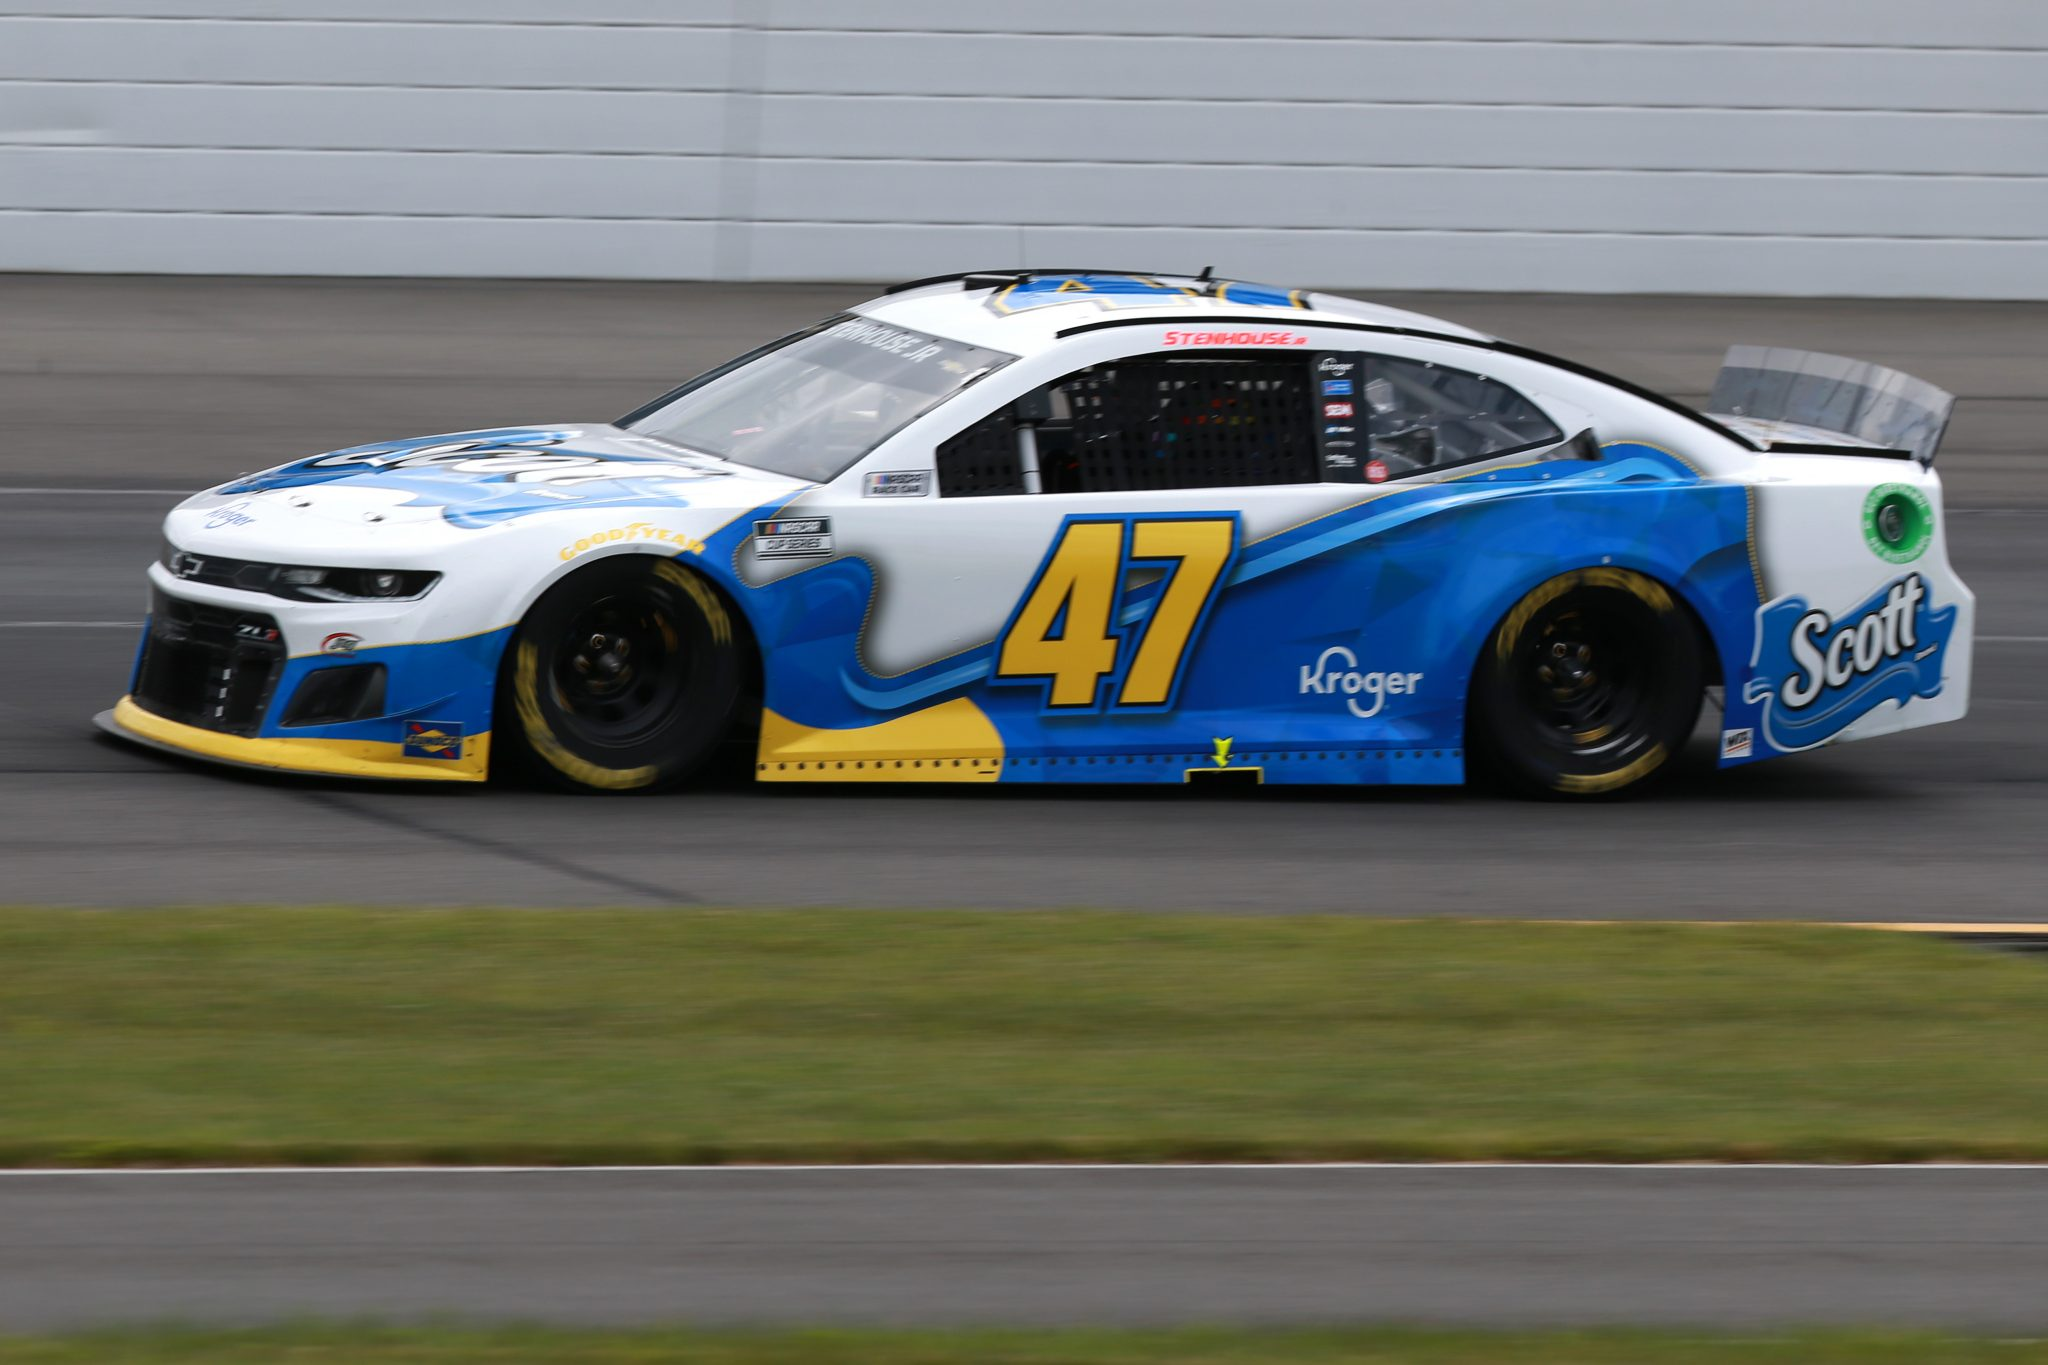 LONG POND, PENNSYLVANIA - JUNE 26: Ricky Stenhouse Jr., driver of the #47 Scott Brand Chevrolet, drives during the NASCAR Cup Series Pocono Organics CBD 325 at Pocono Raceway on June 26, 2021 in Long Pond, Pennsylvania. (Photo by Sean Gardner/Getty Images)   Getty Images